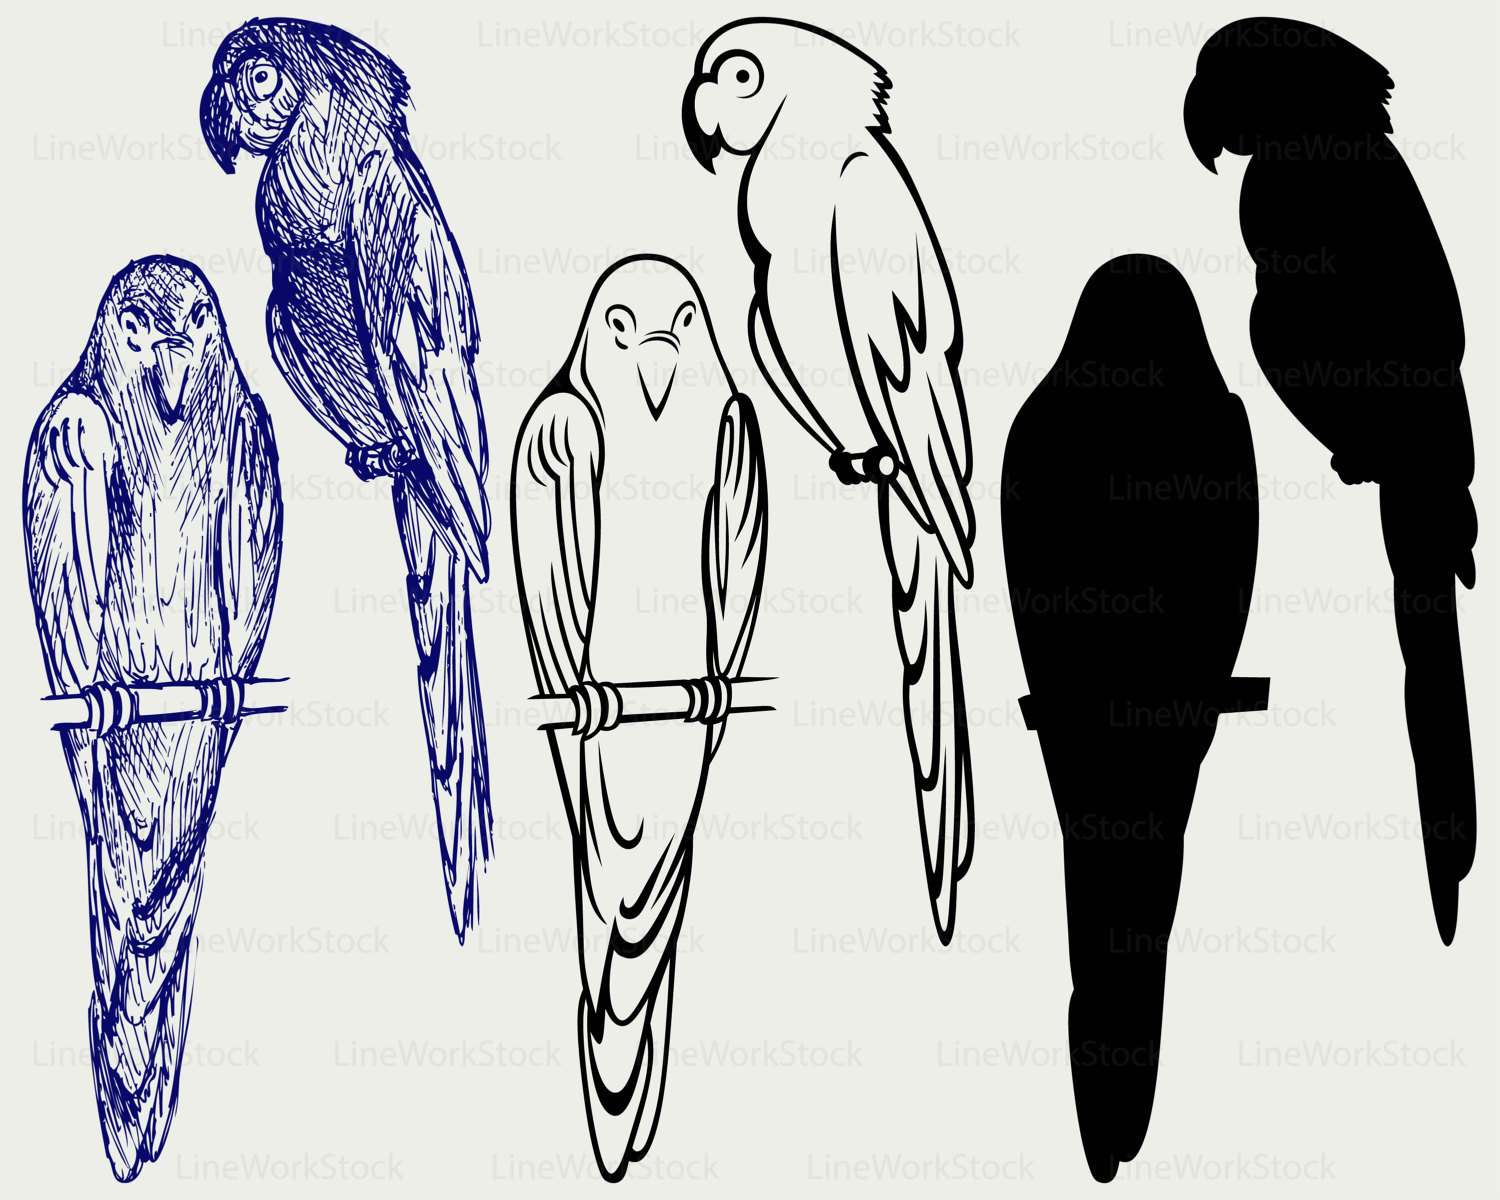 Budgie svg #4, Download drawings